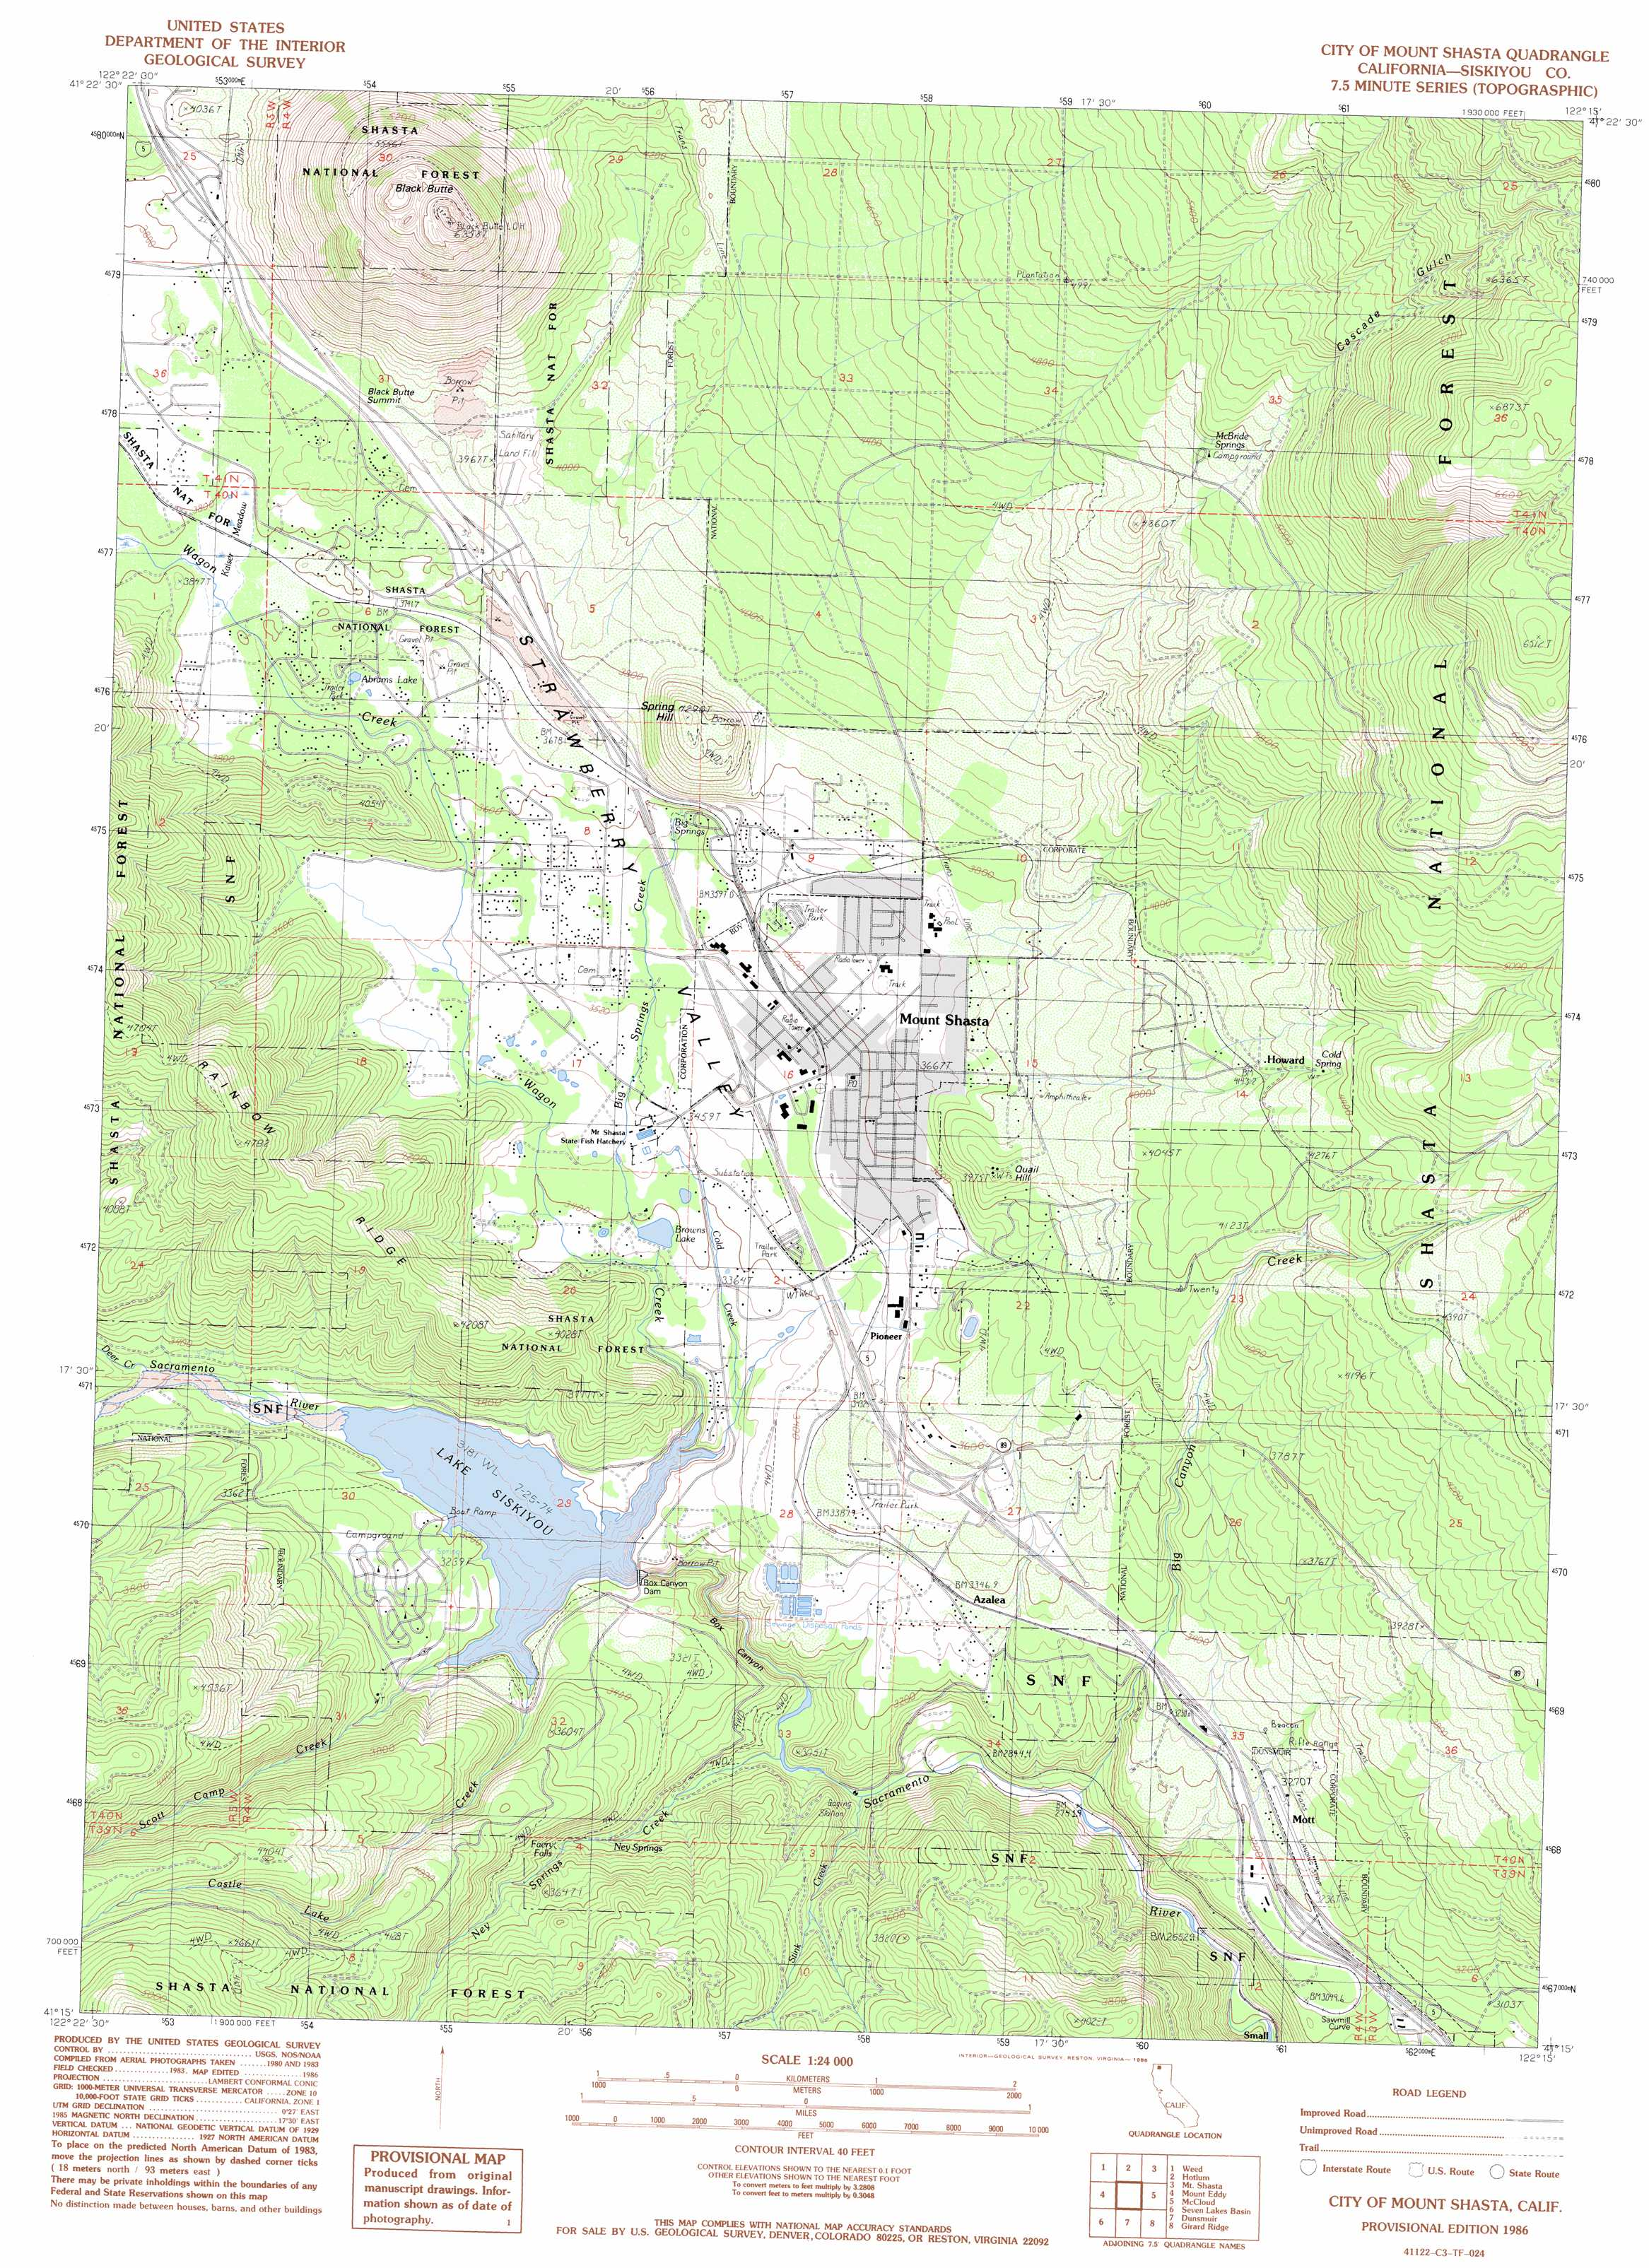 City Of Mount Shasta Topographic Map CA USGS Topo Quad C - Us geological survey topographic maps for sale